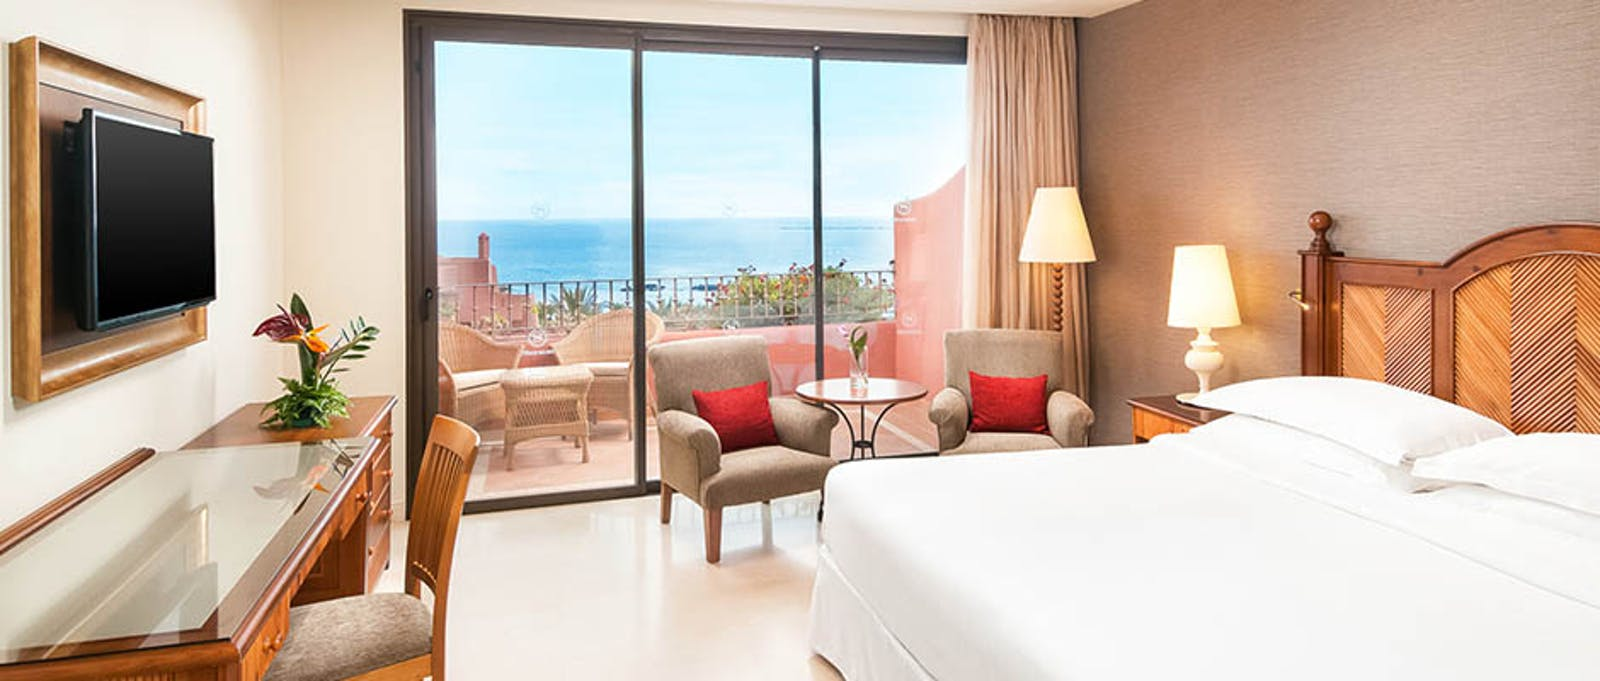 Double Bedroom at Sheraton La Caleta Resort, Tenerife